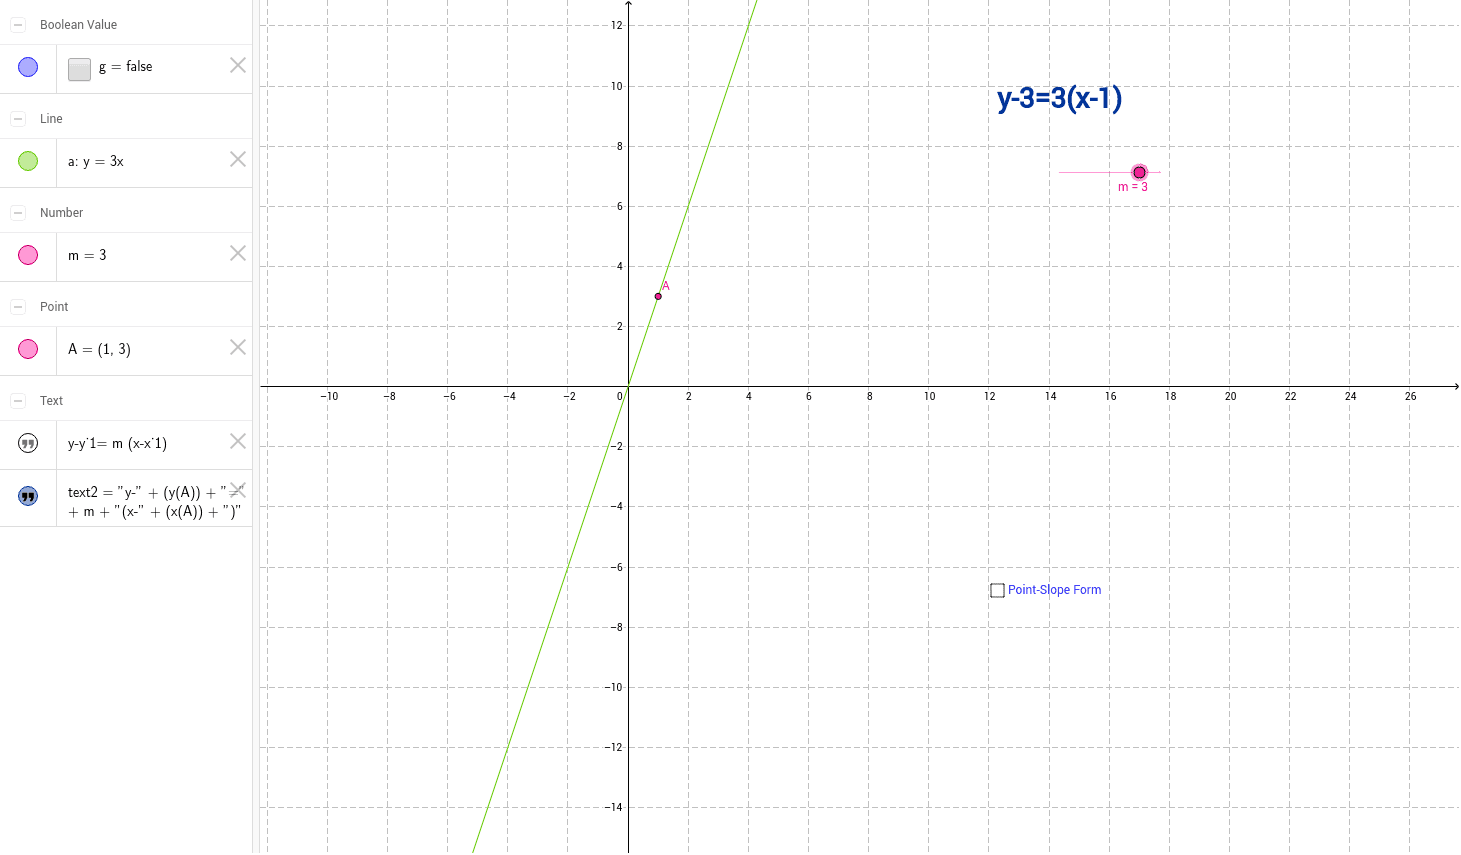 Point slope form geogebra 1 move slider m what happens when you change the value of m what characteristic of the line is changing what part of the equation is equal to the value falaconquin